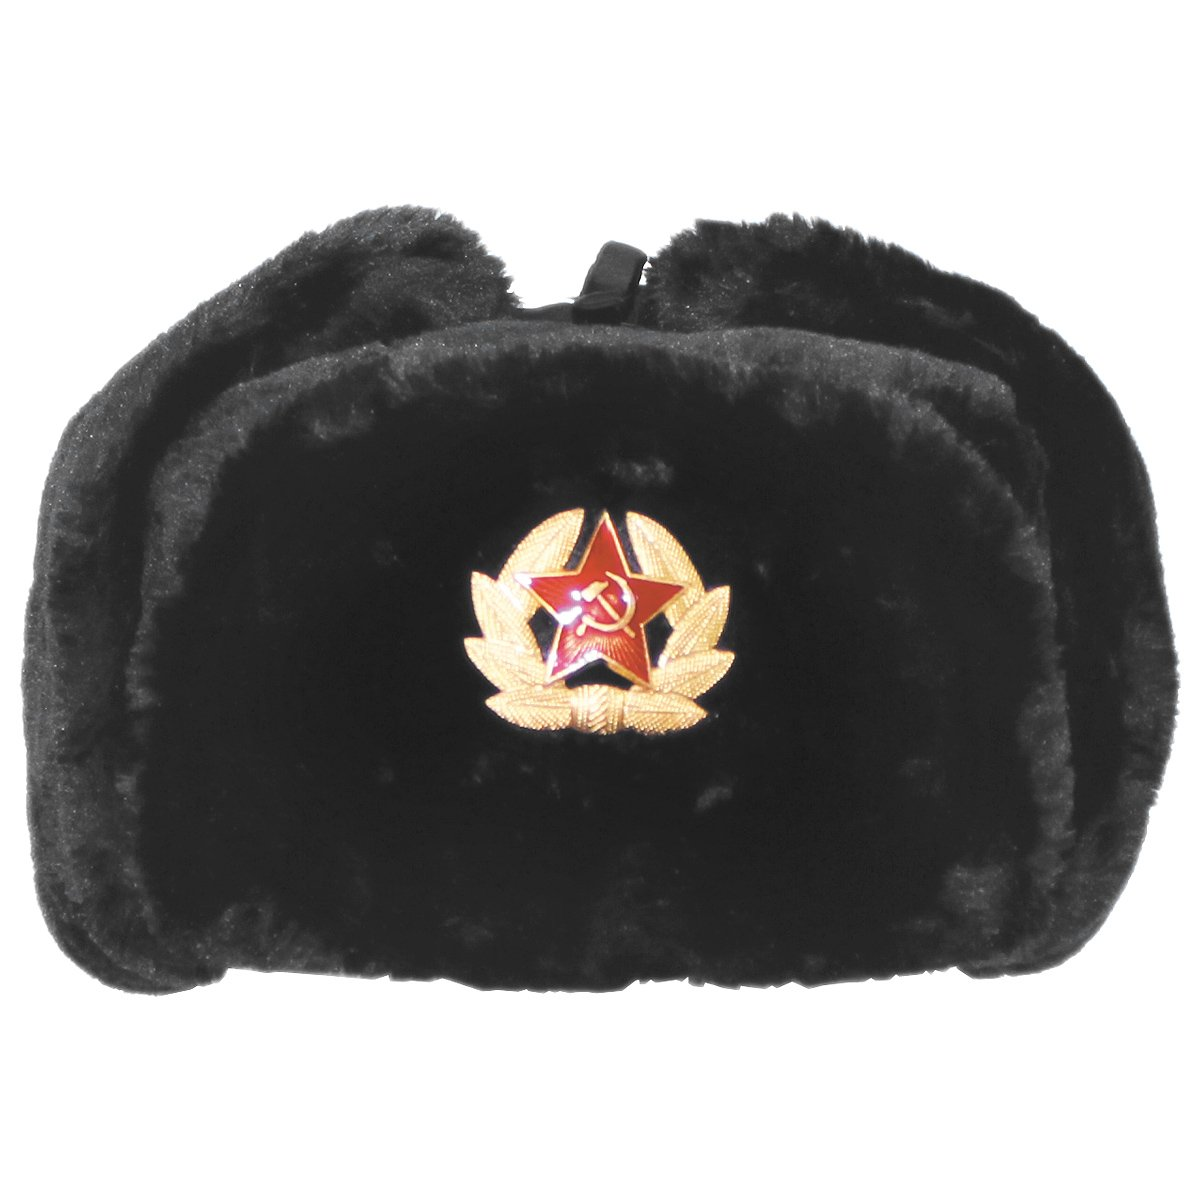 8f6b5cc2b98 Russian Army Style Winter Cap Warm Trapper Hat Ear Flaps with Badge Black   Amazon.co.uk  Kitchen   Home